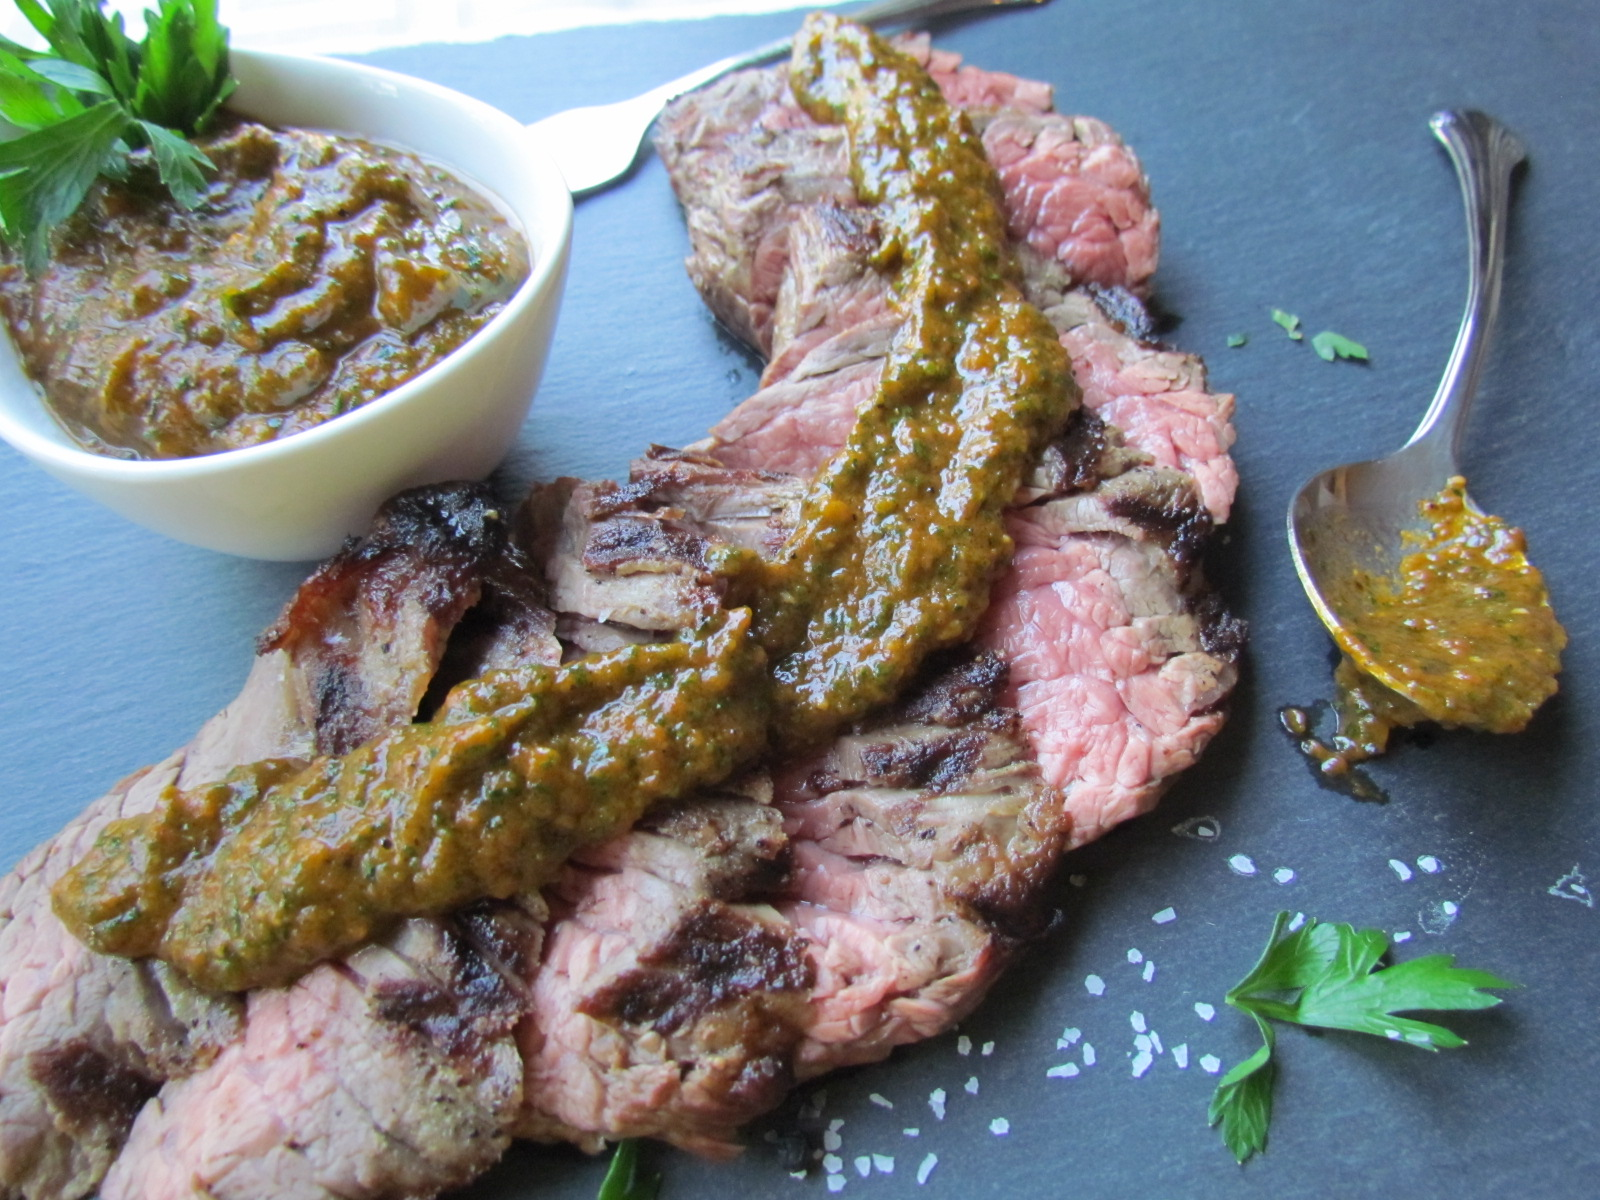 Roasted Tomato Chimichurri Sauce